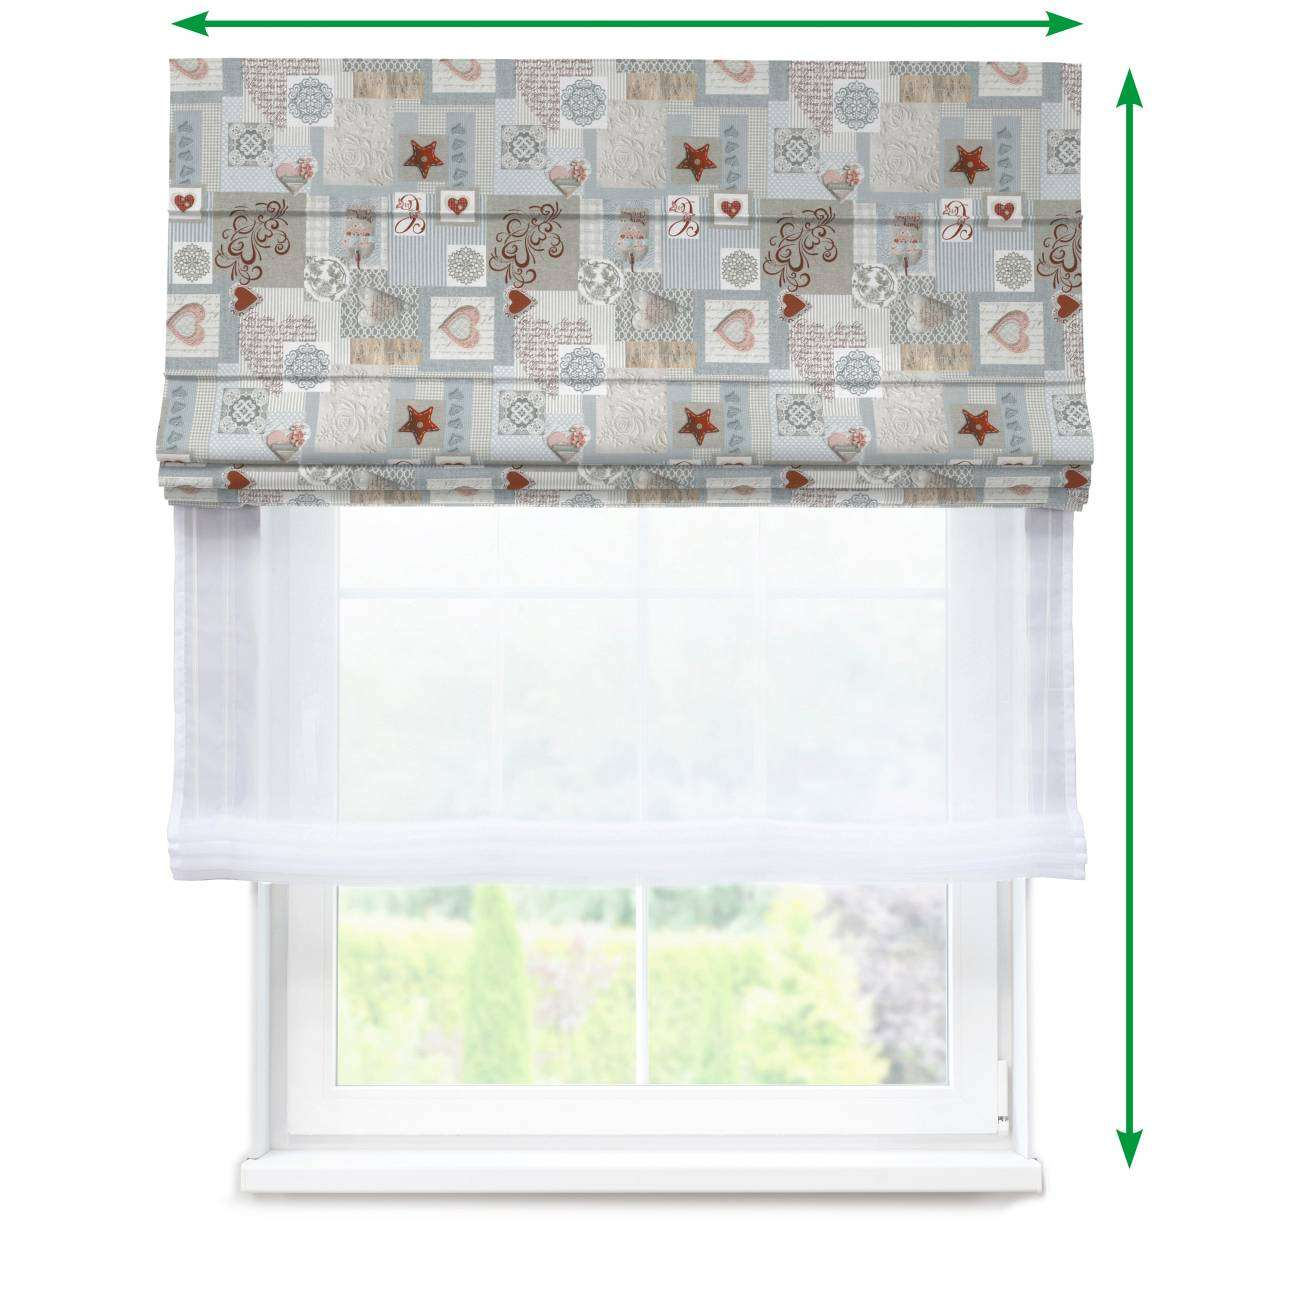 Voile and fabric roman blind (DUO II) in collection Christmas, fabric: 629-27